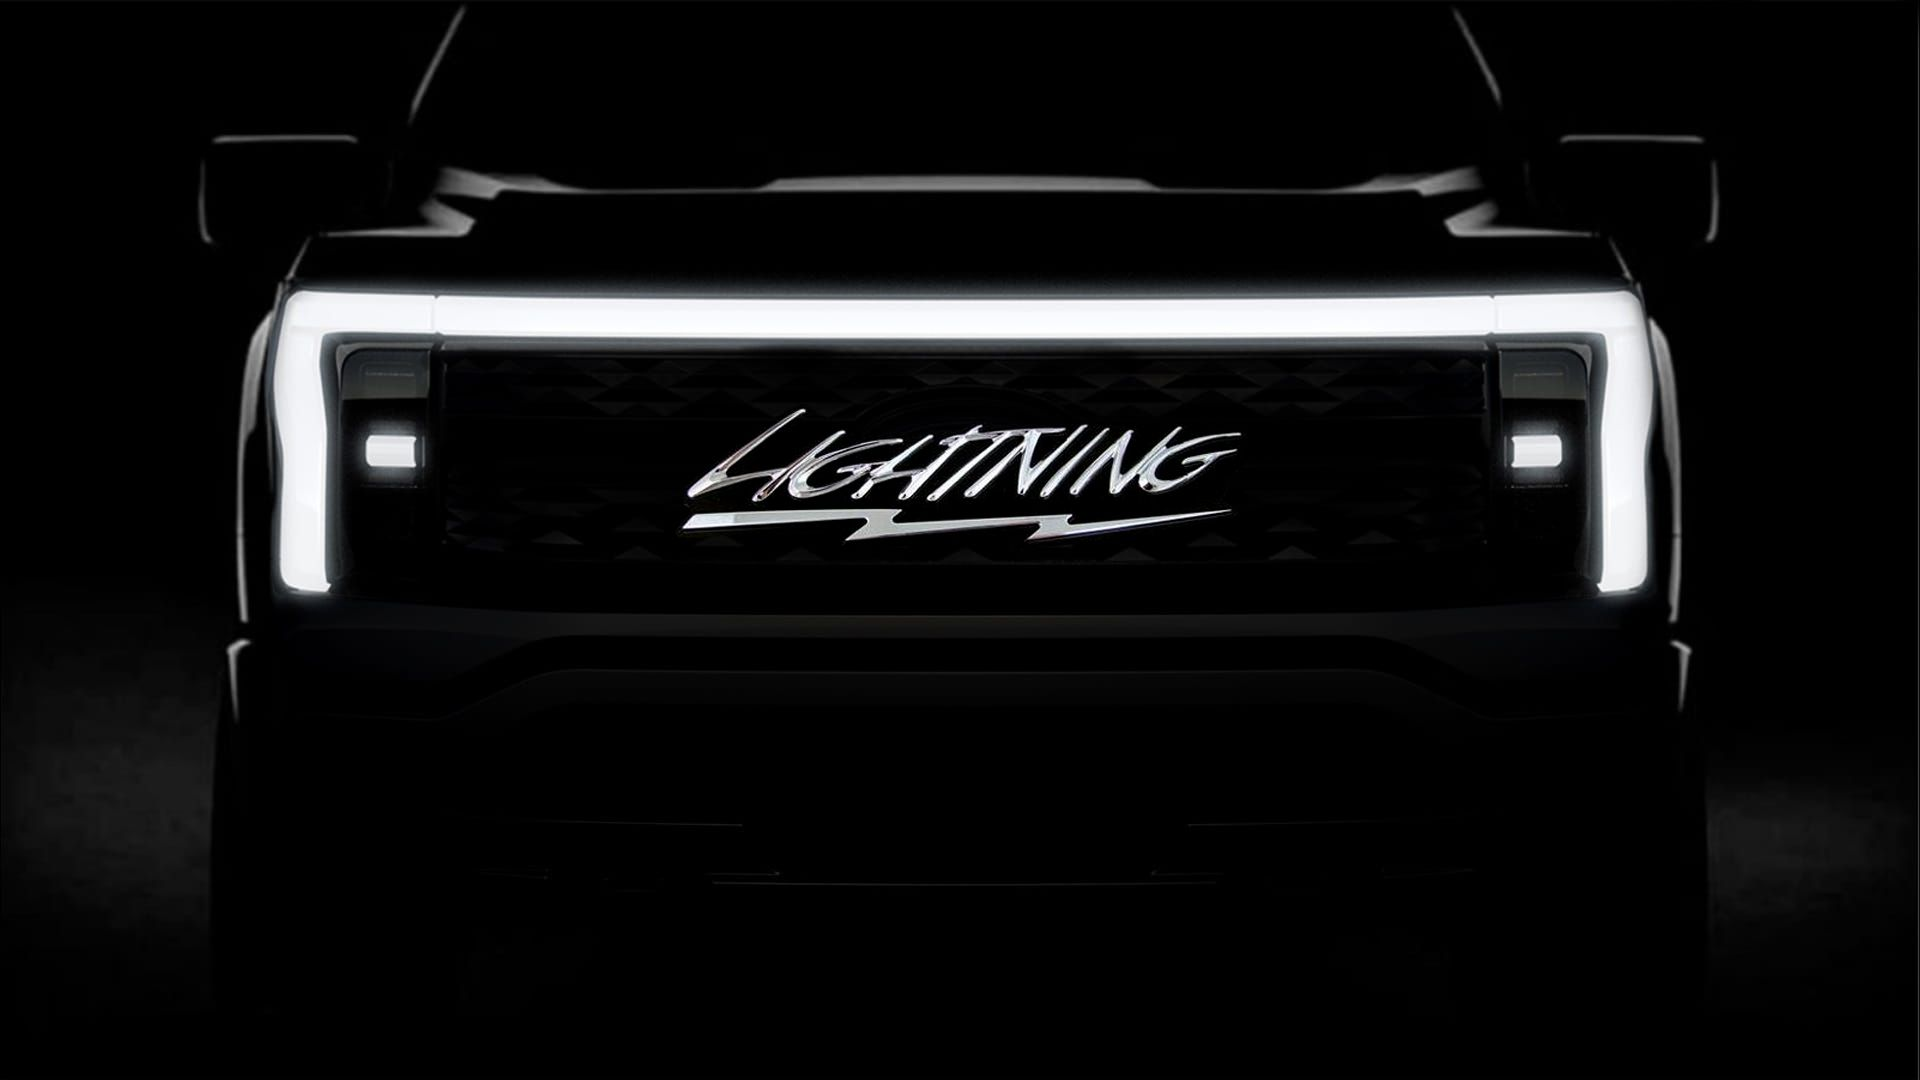 The Ford Lightning Is Coming Back As An Electric Pickup Truck – I Guess We Should Have Seen This Coming